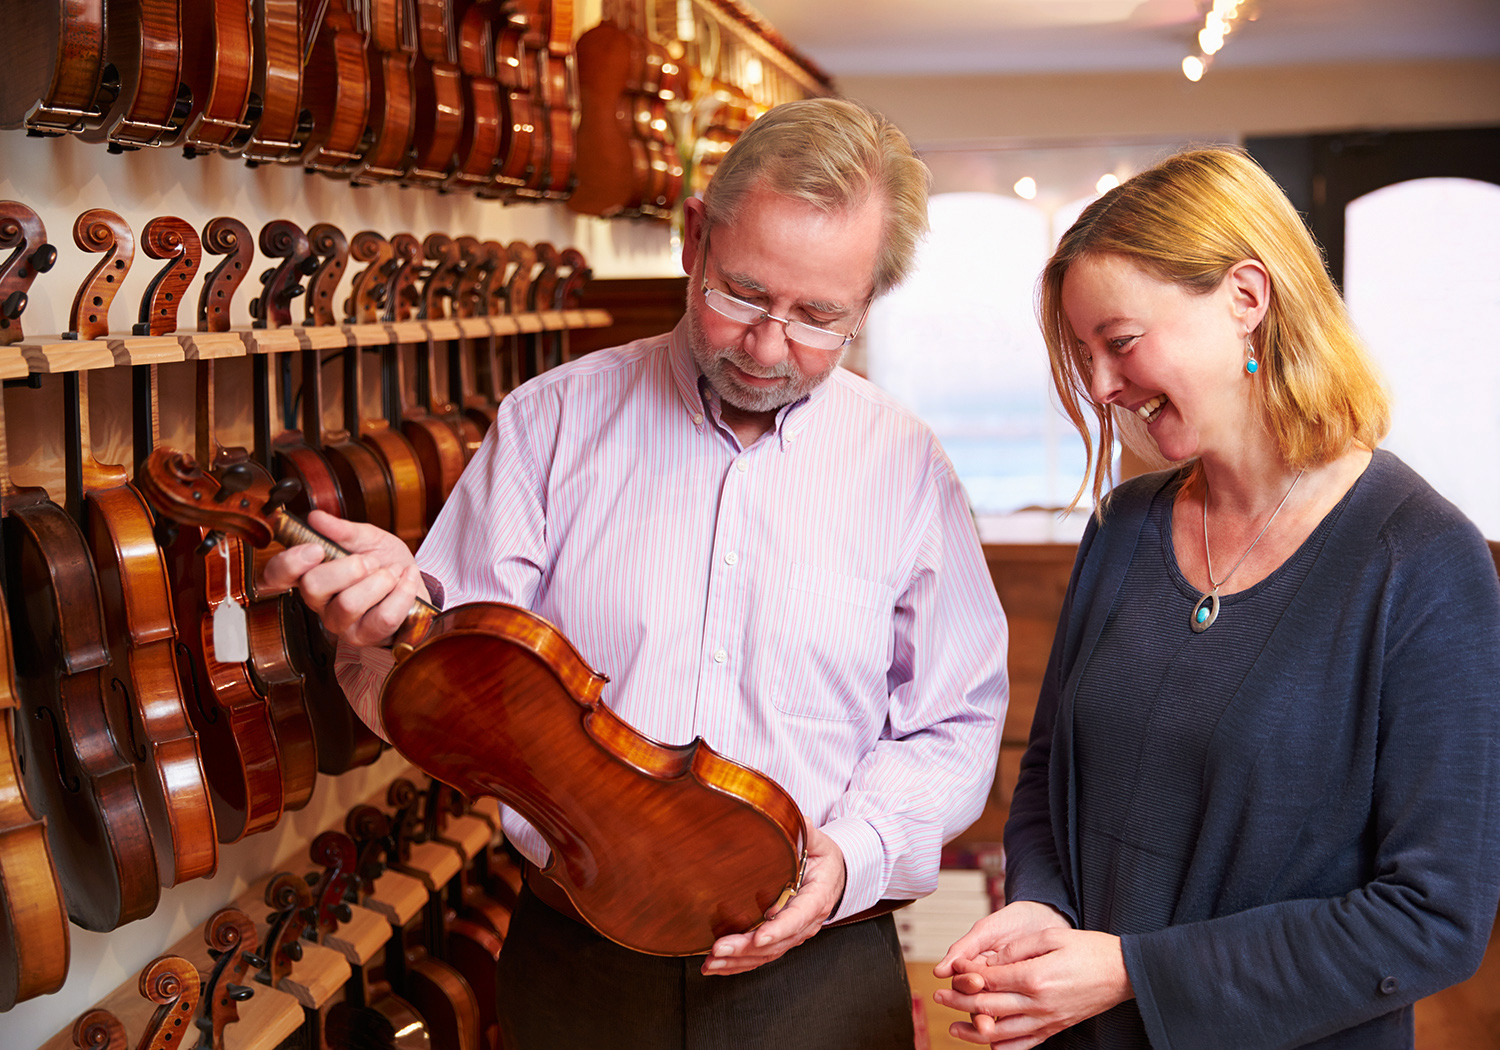 Man and woman in a violin shop holding a violin and smiling